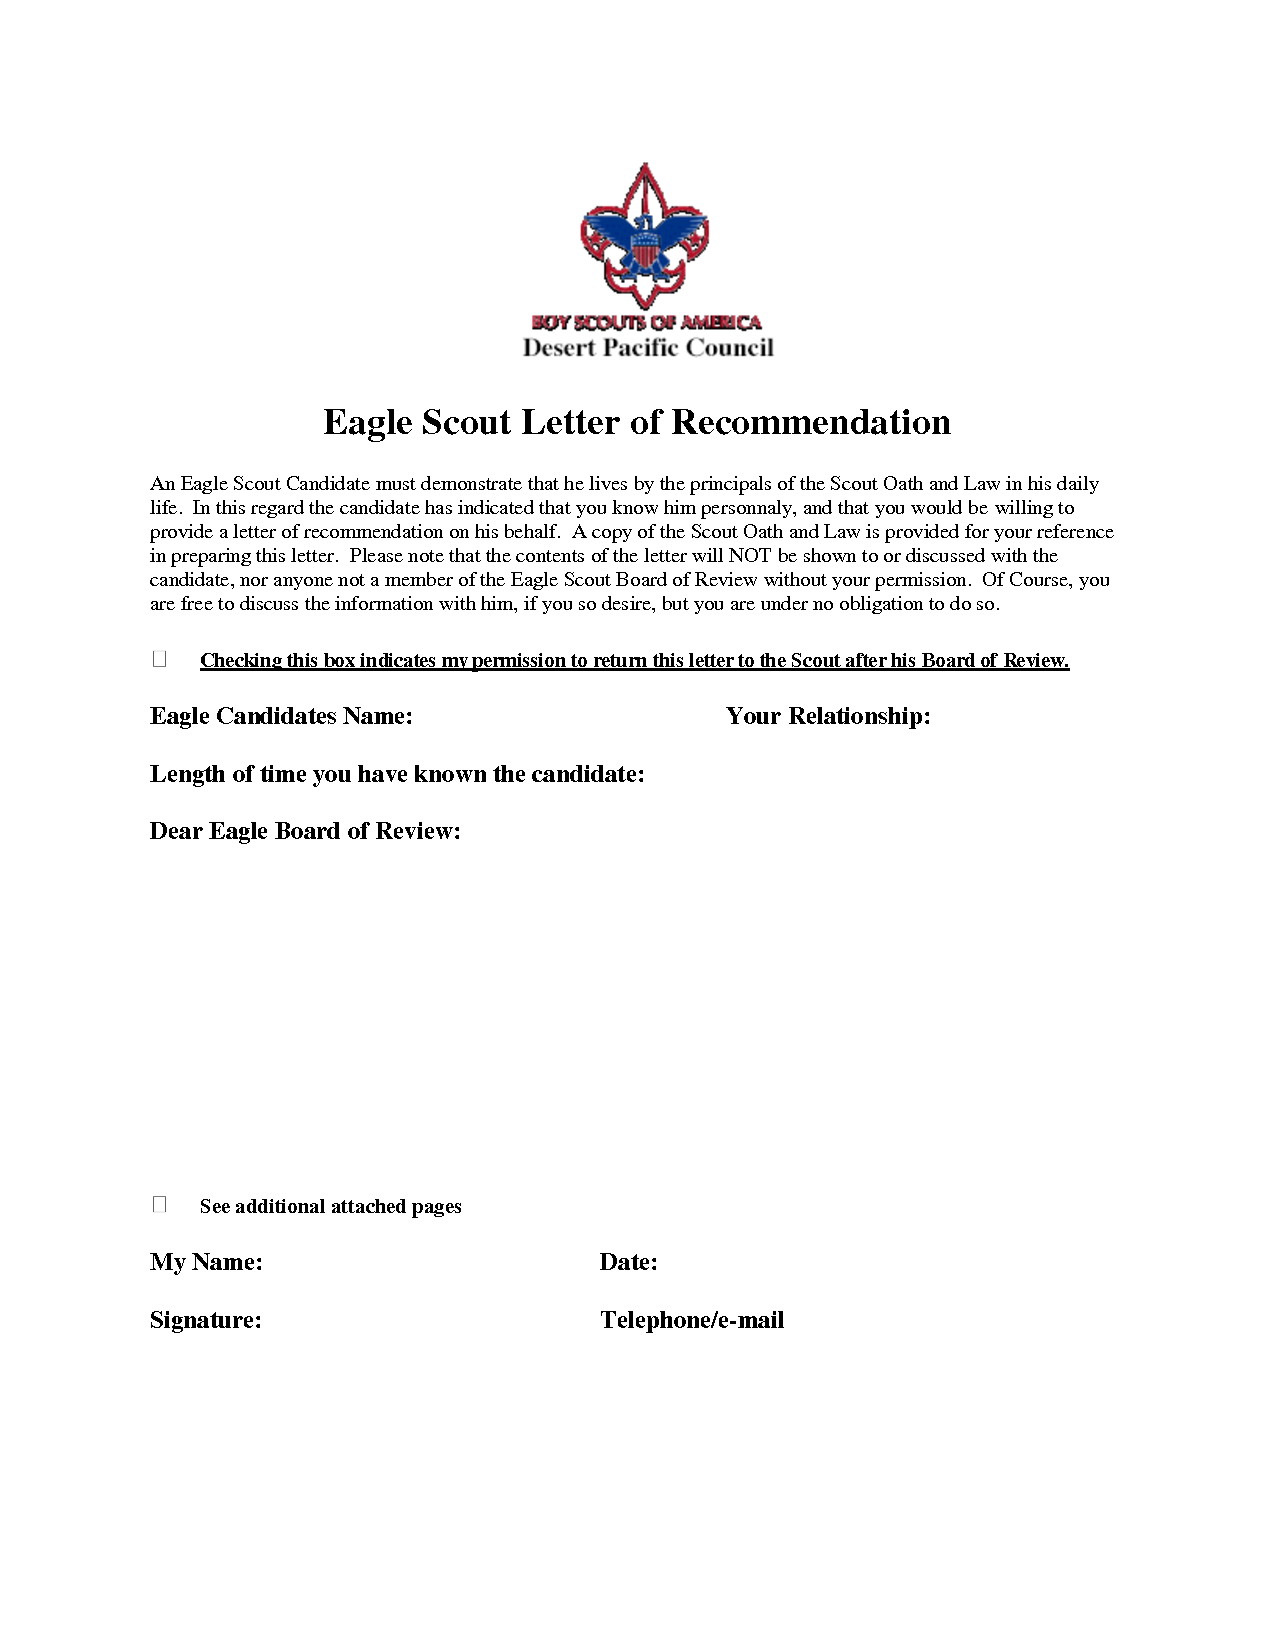 Eagle scout letter of recommendation example free professional eagle scout letter of recommendation eagle scout letter of eagle scout letter of recommendation example cover letter example eagle scout letter of spiritdancerdesigns Image collections